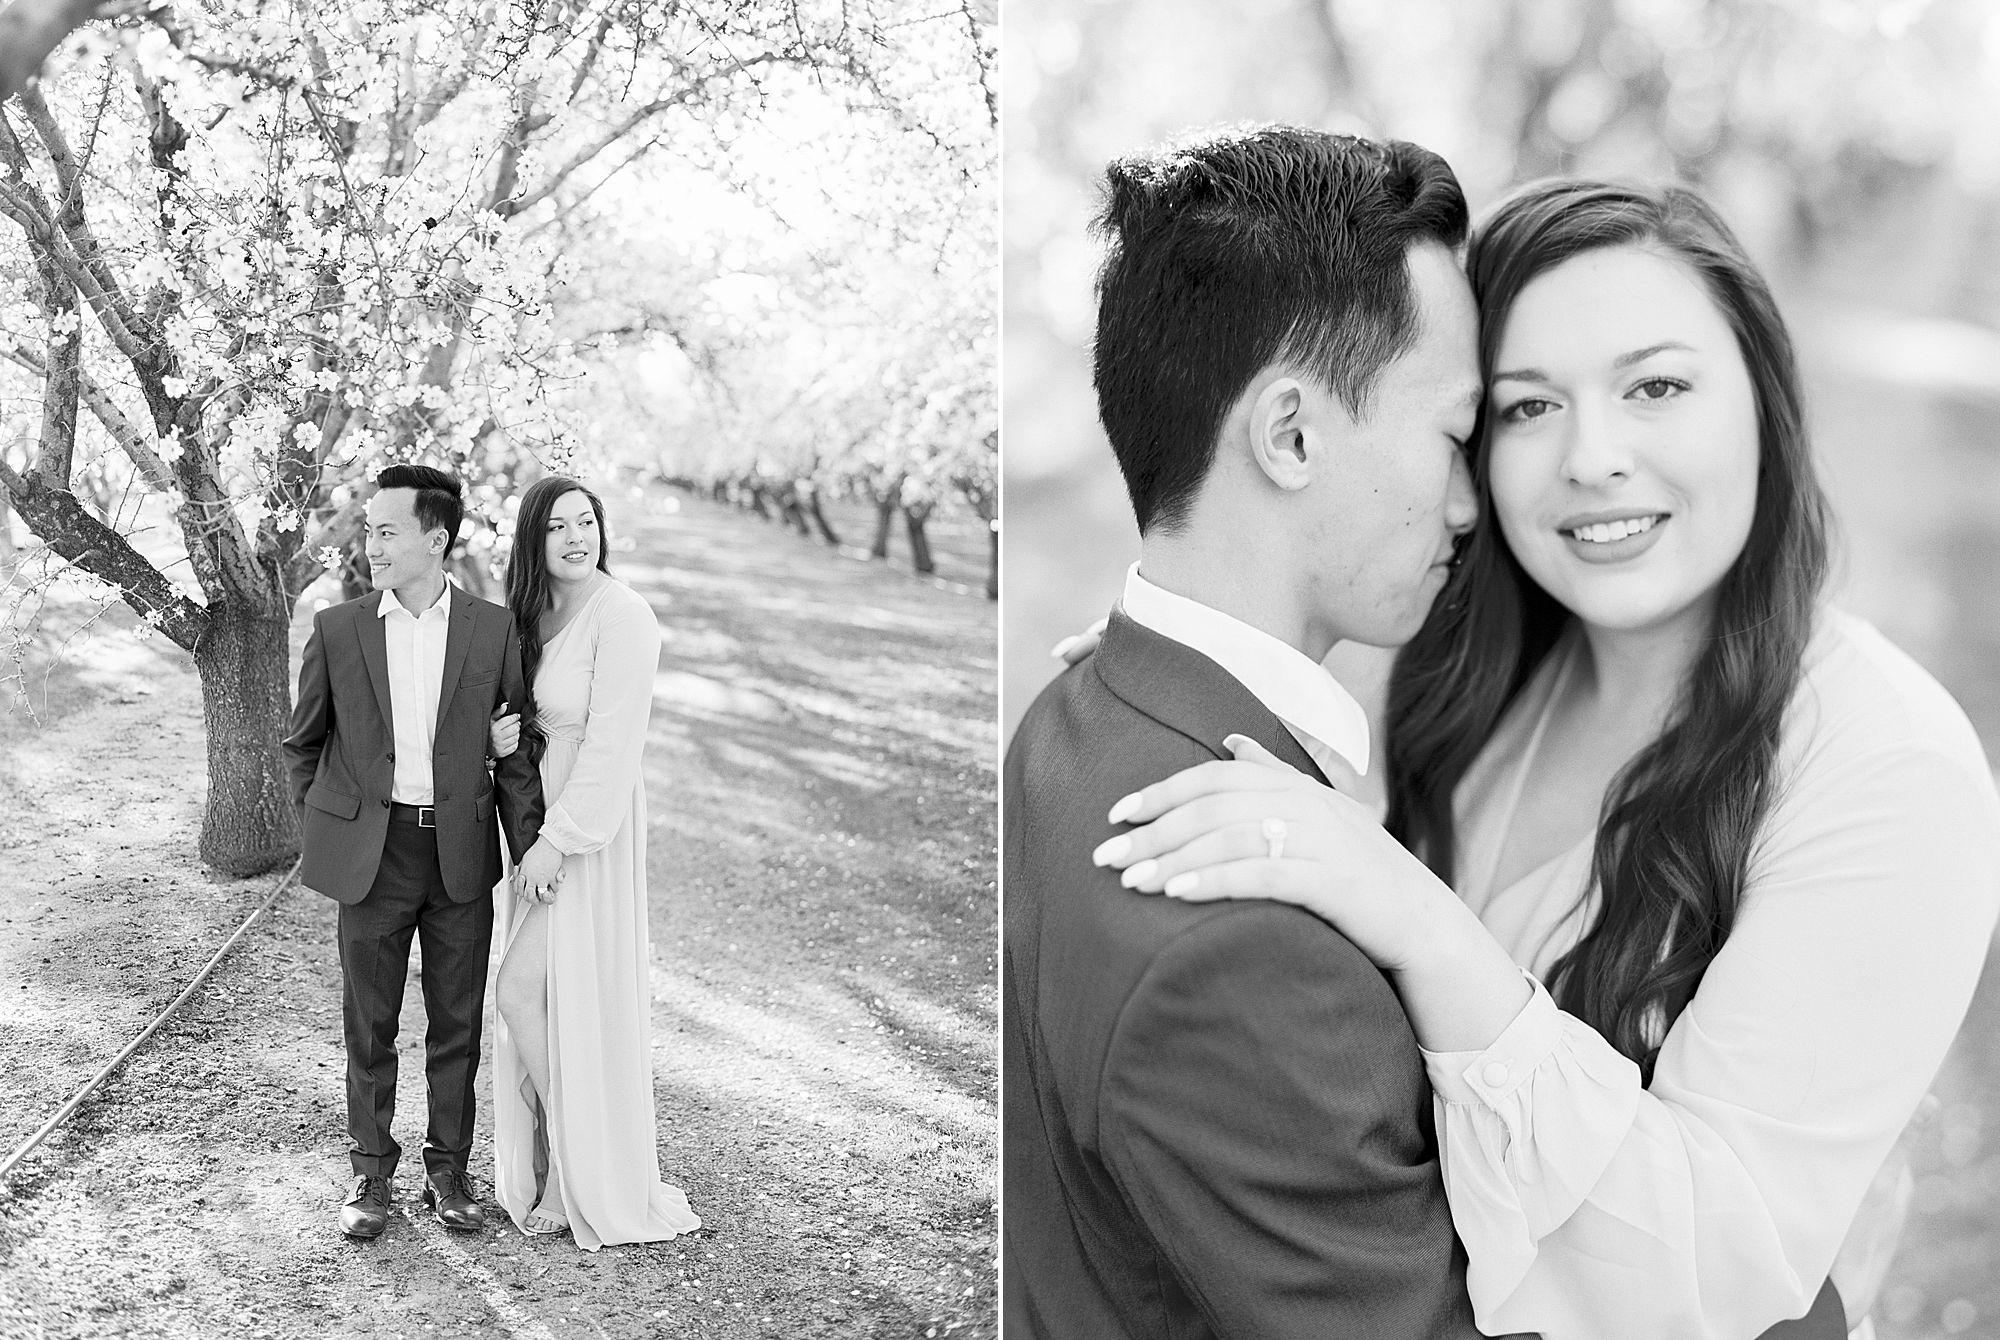 Almond Orchard Engagement Session - Caley and Tyler - Lone Oak Wedding - Ashley Baumgartner - Almond Blossom_0011.jpg